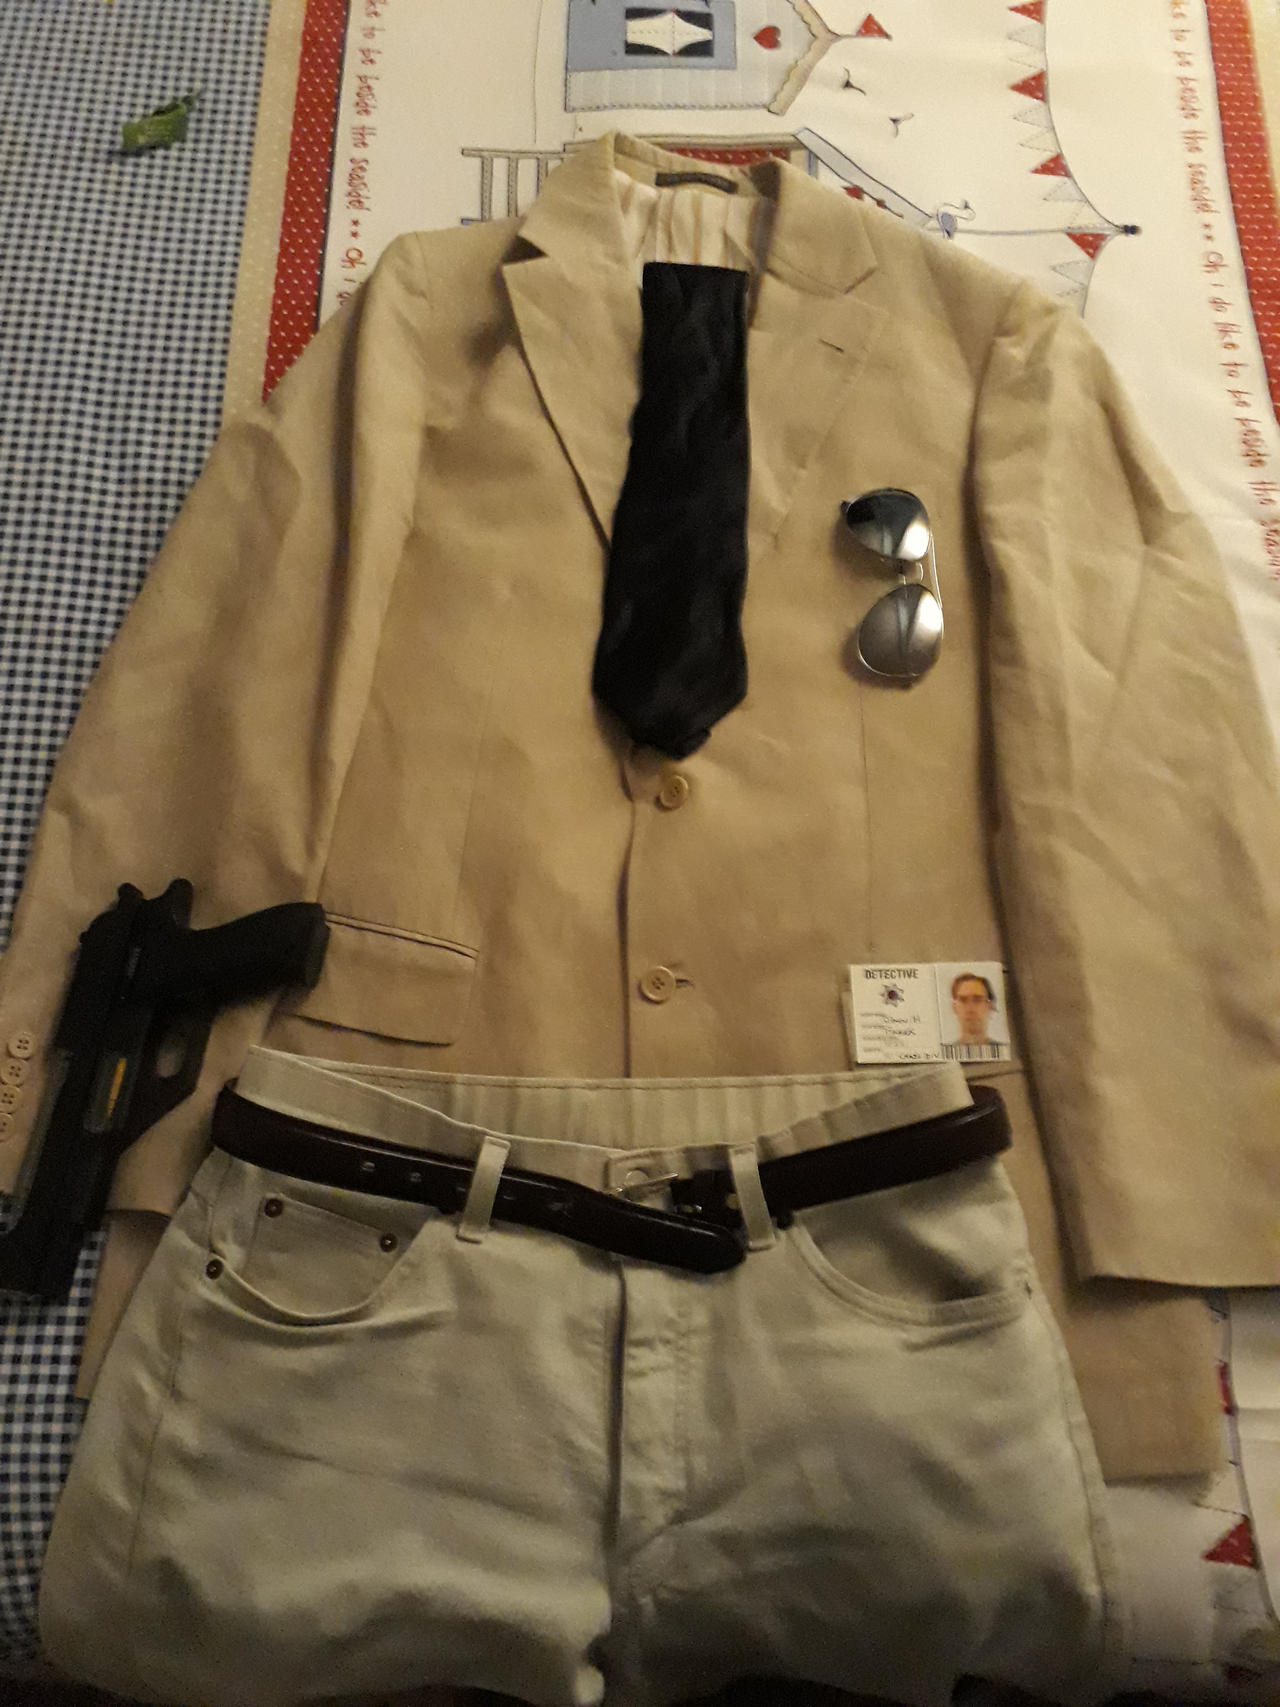 Chase HQ Detective cosplay combo - Tie alt